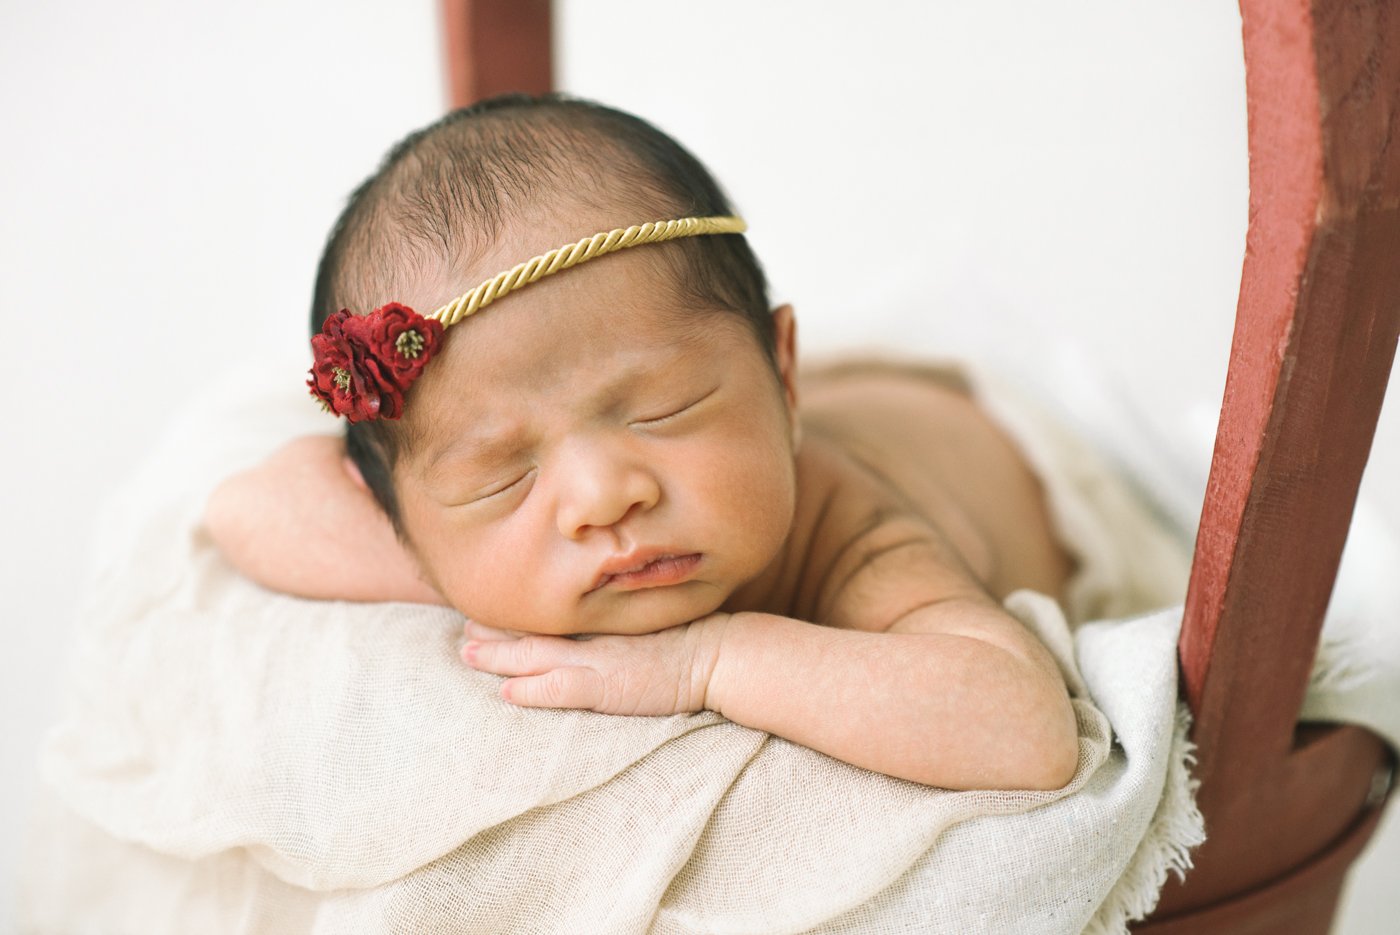 Best-Portland-Oregon-Newborn-photography-Sleeping-Baby-Maternity-Photography-red-gold-flower-headband-basket-bucket-Shelley-Marie-Photography.jpg